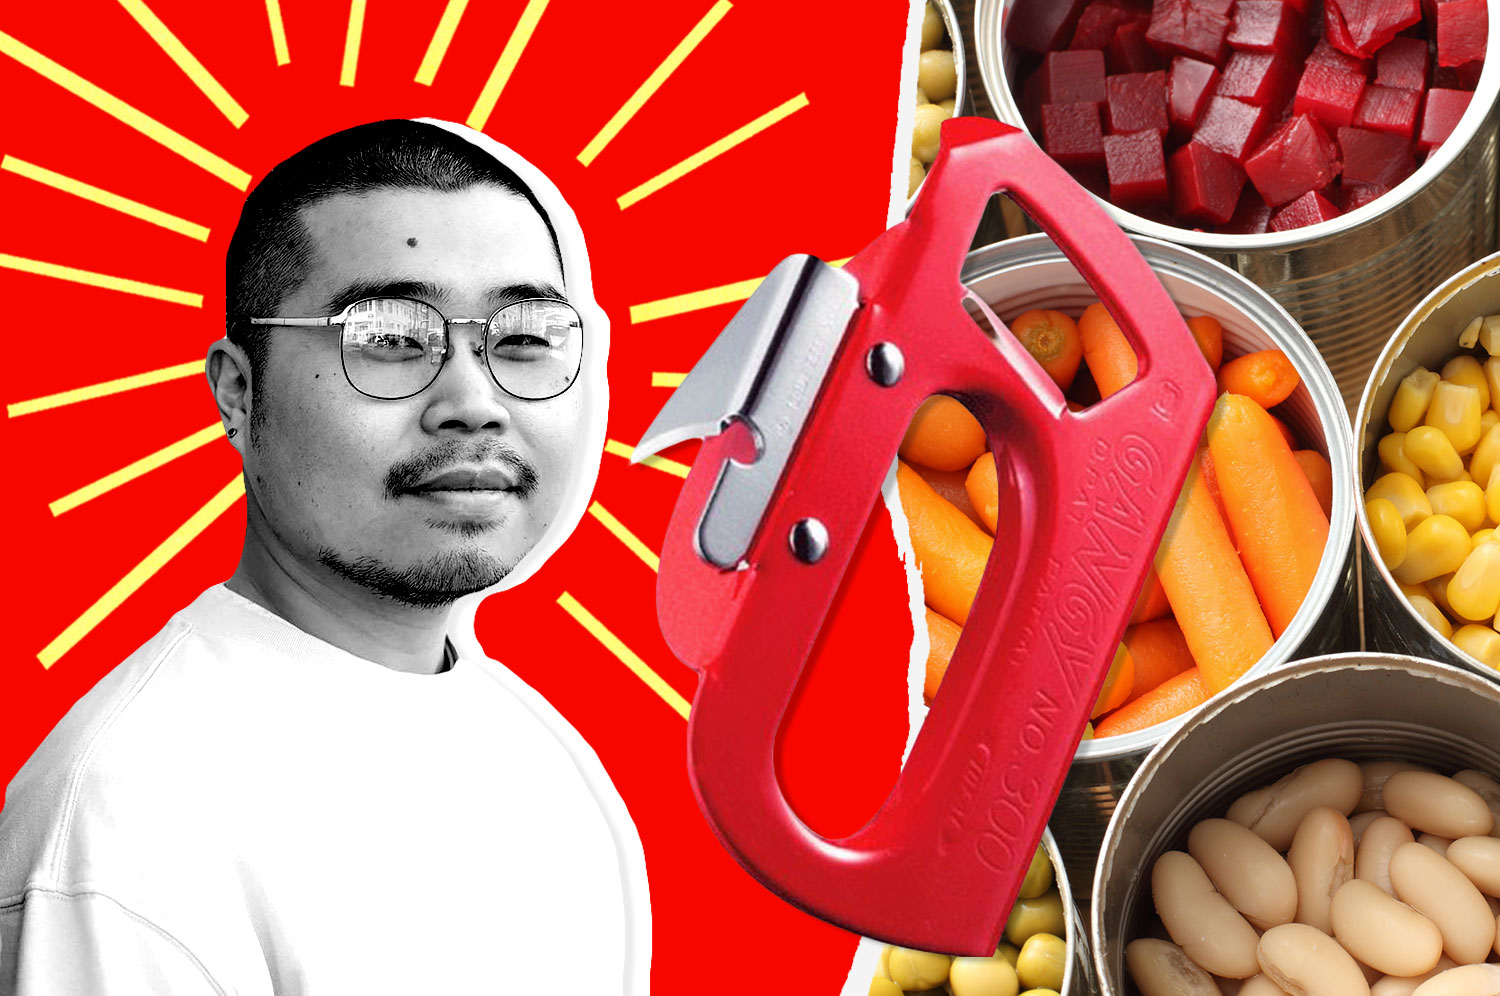 This 'Sick' Japanese Can Opener Might Truly Be the Best